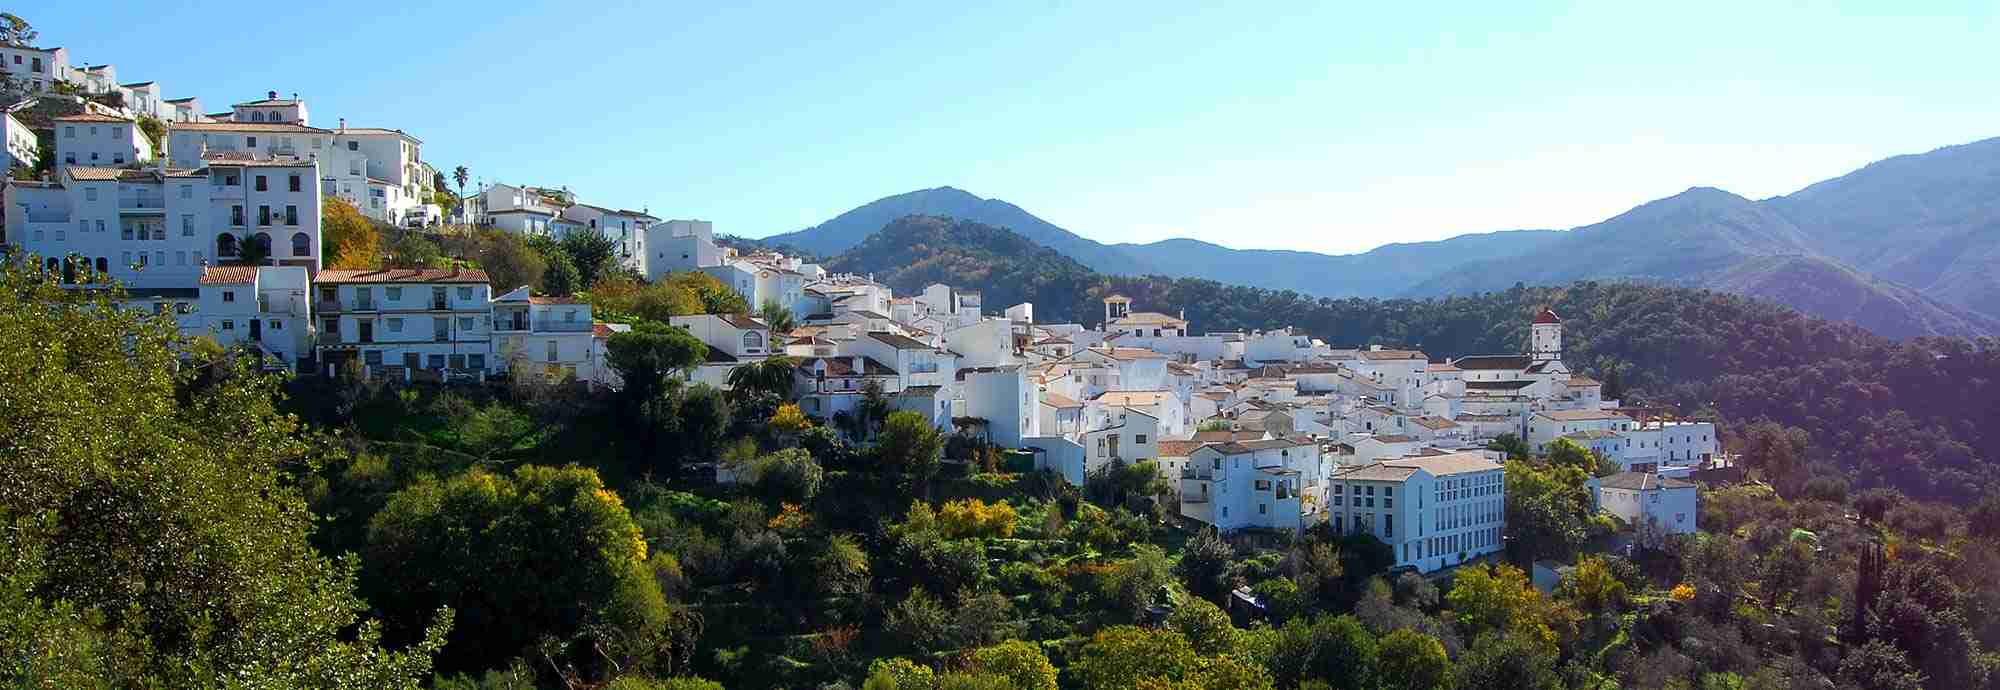 Pet friendly Holiday  Villas in Malaga near the beach